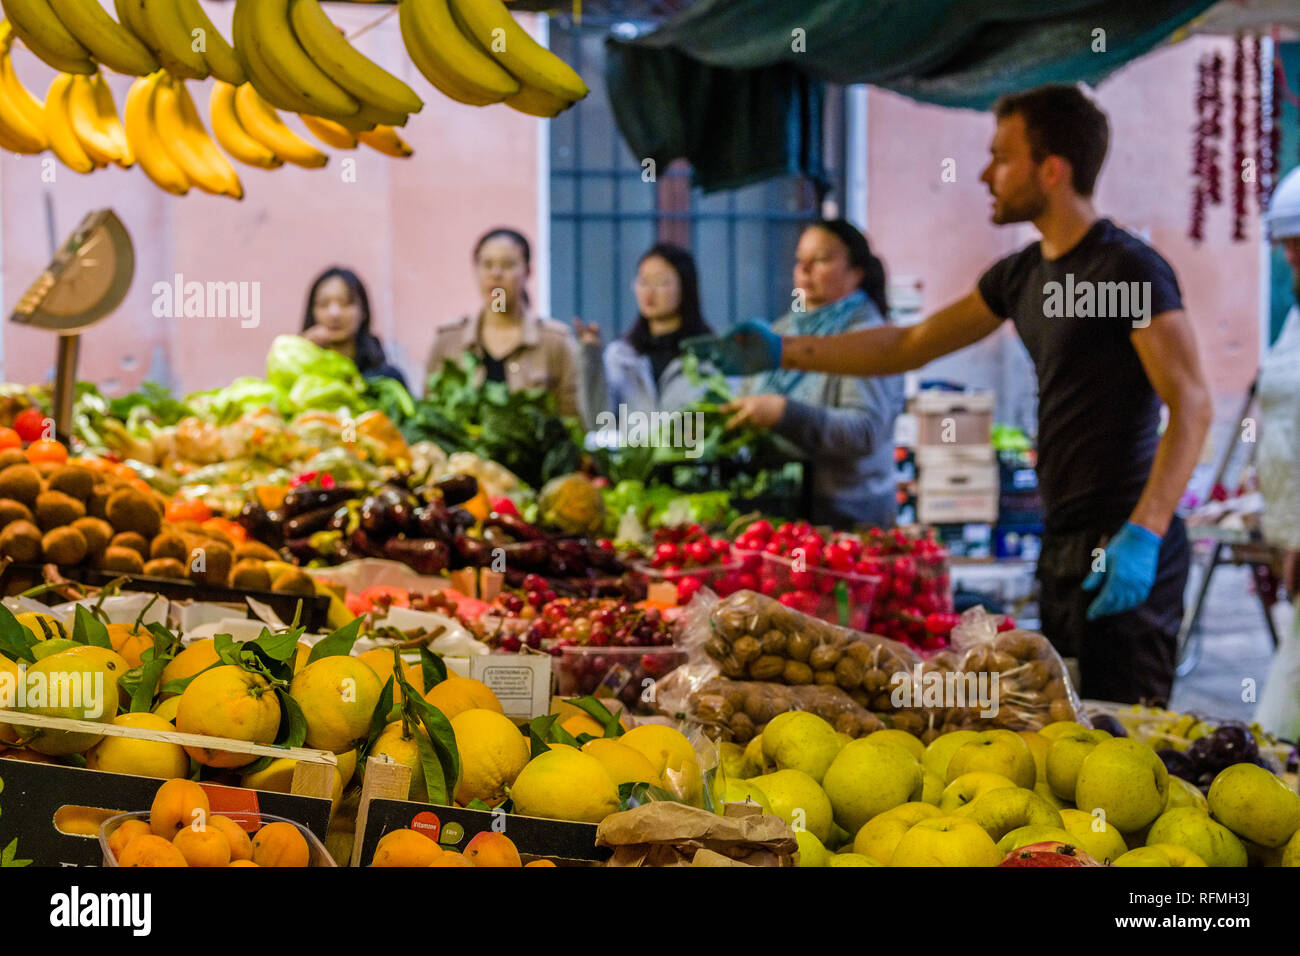 Market trader is selling fruits and vegetables at Rialto Market, Mercato di Rialto to tourists - Stock Image